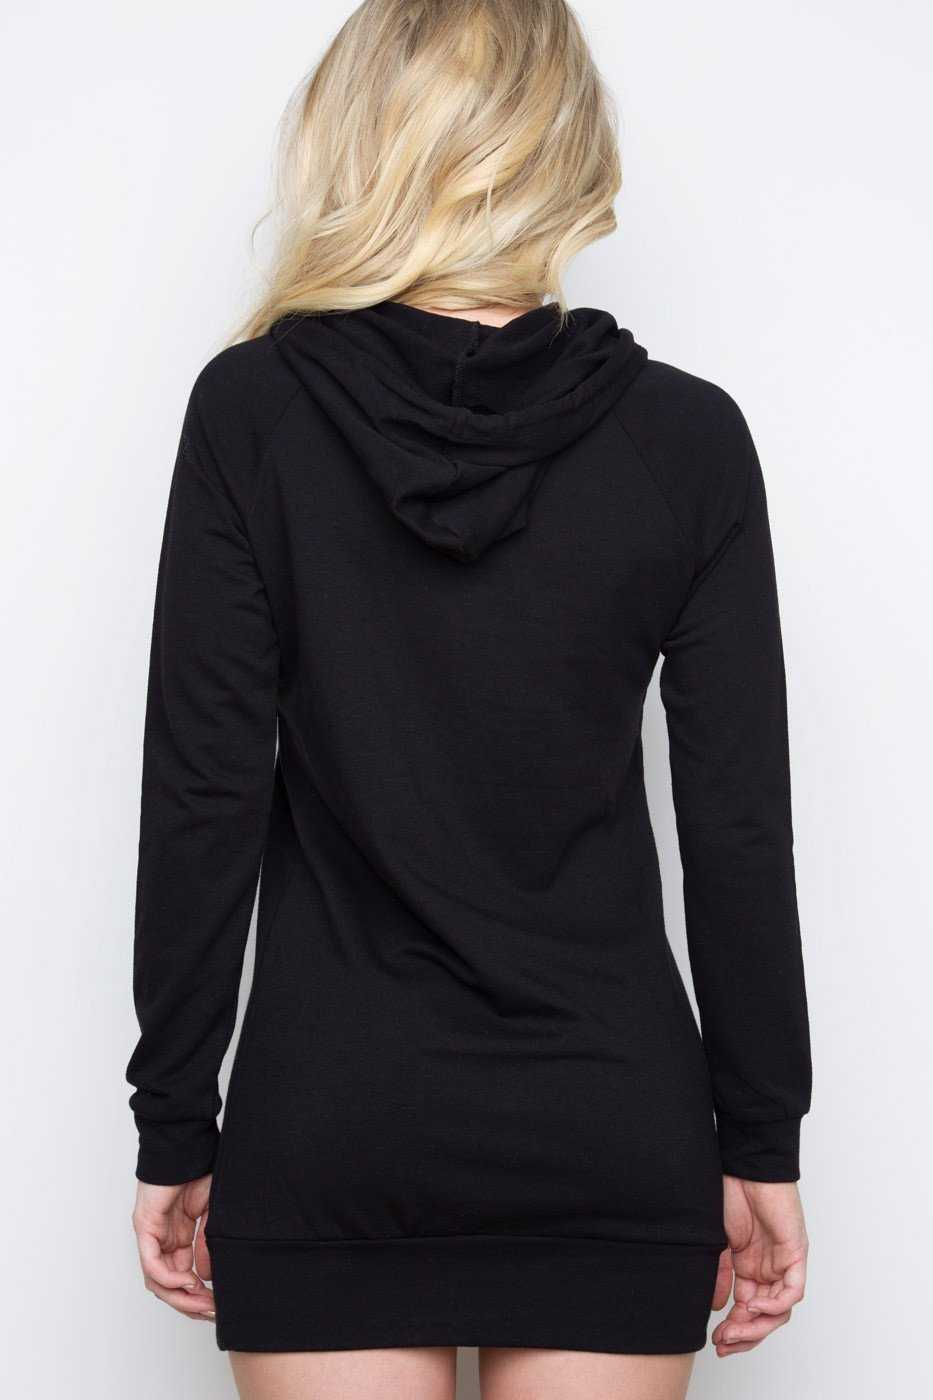 Dresses - Rogue Sweatshirt Dress - Black